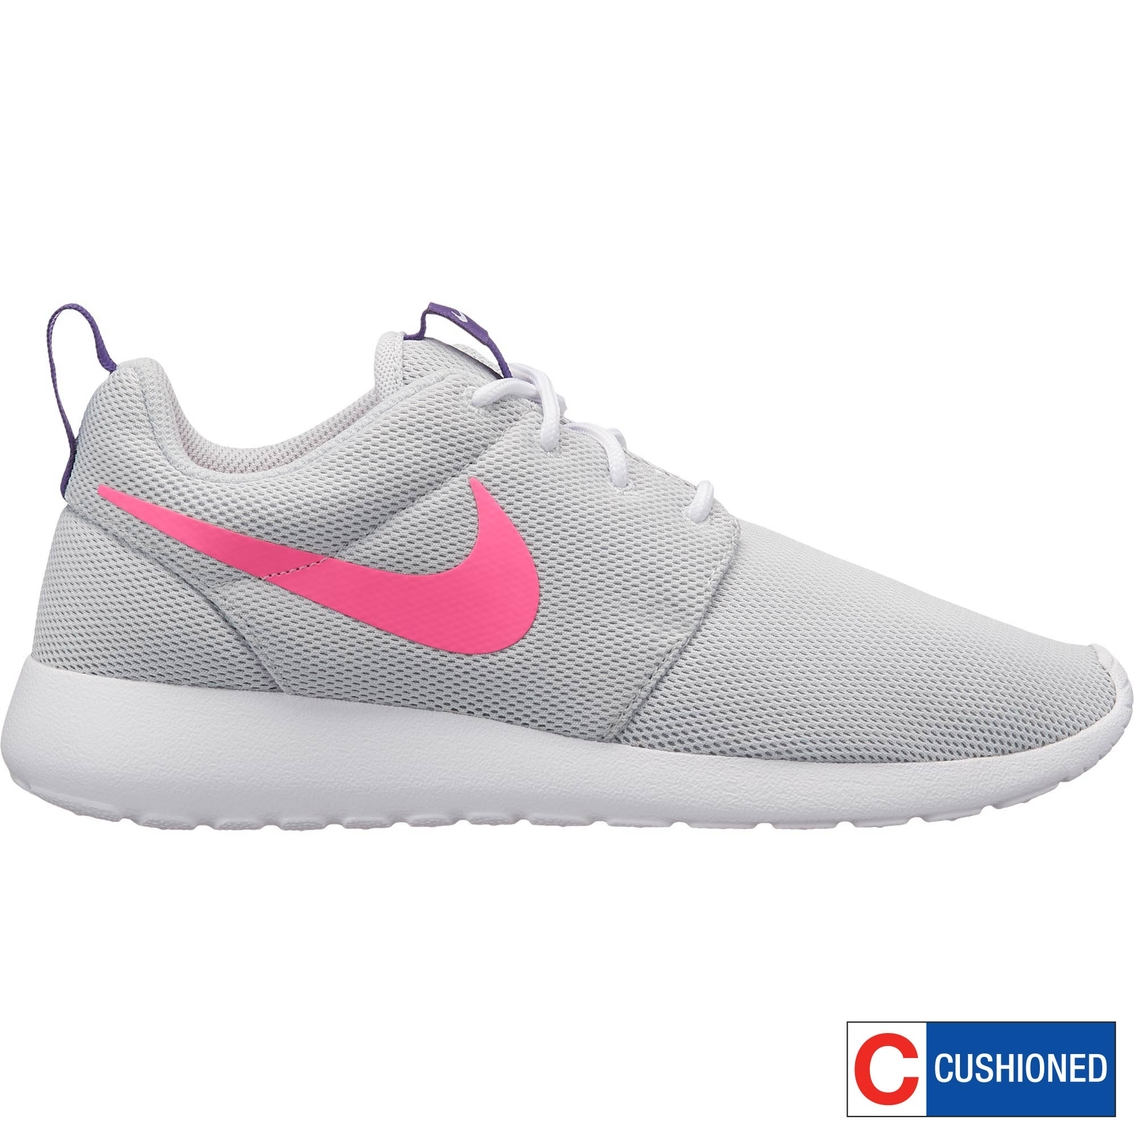 Nike Women's Roshe One Shoes | Sneakers